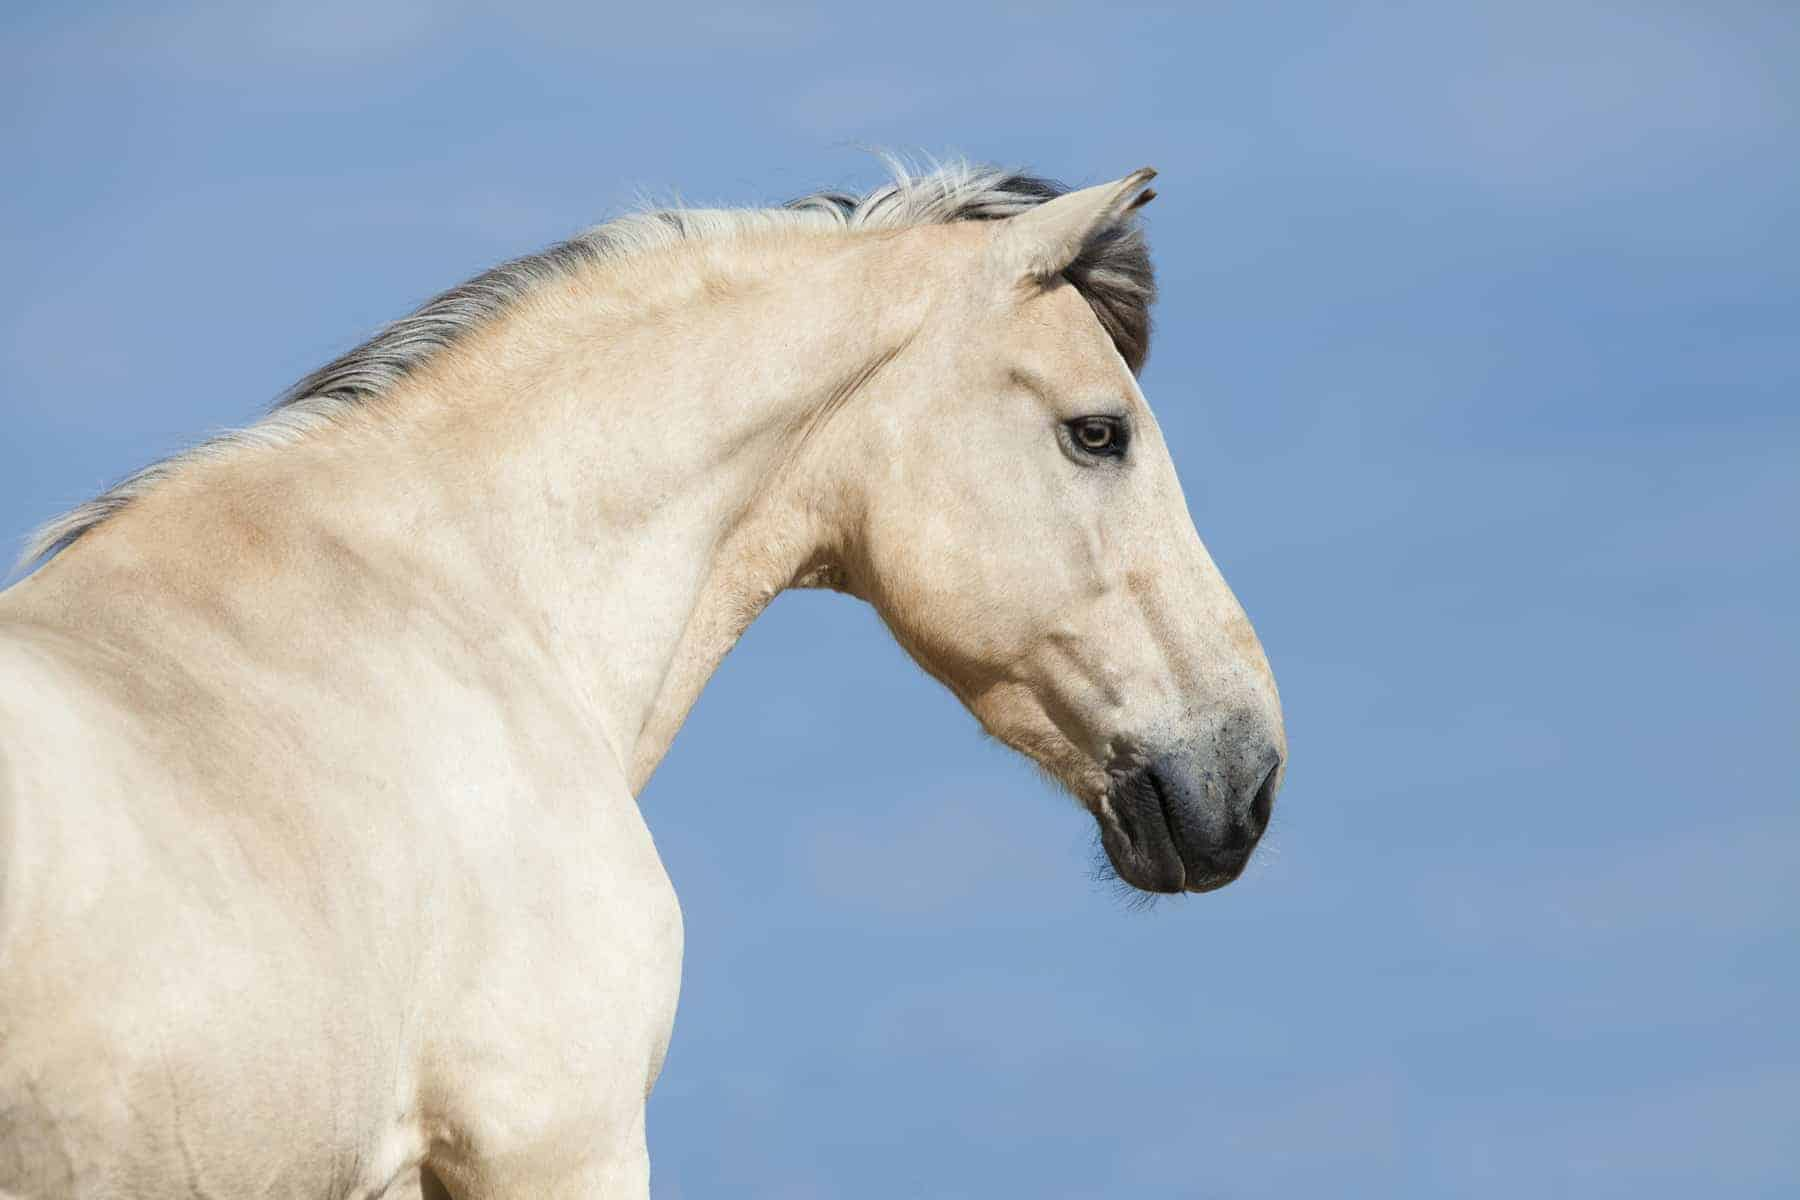 Could Horses' Neck Postures Indicate Back Pain?